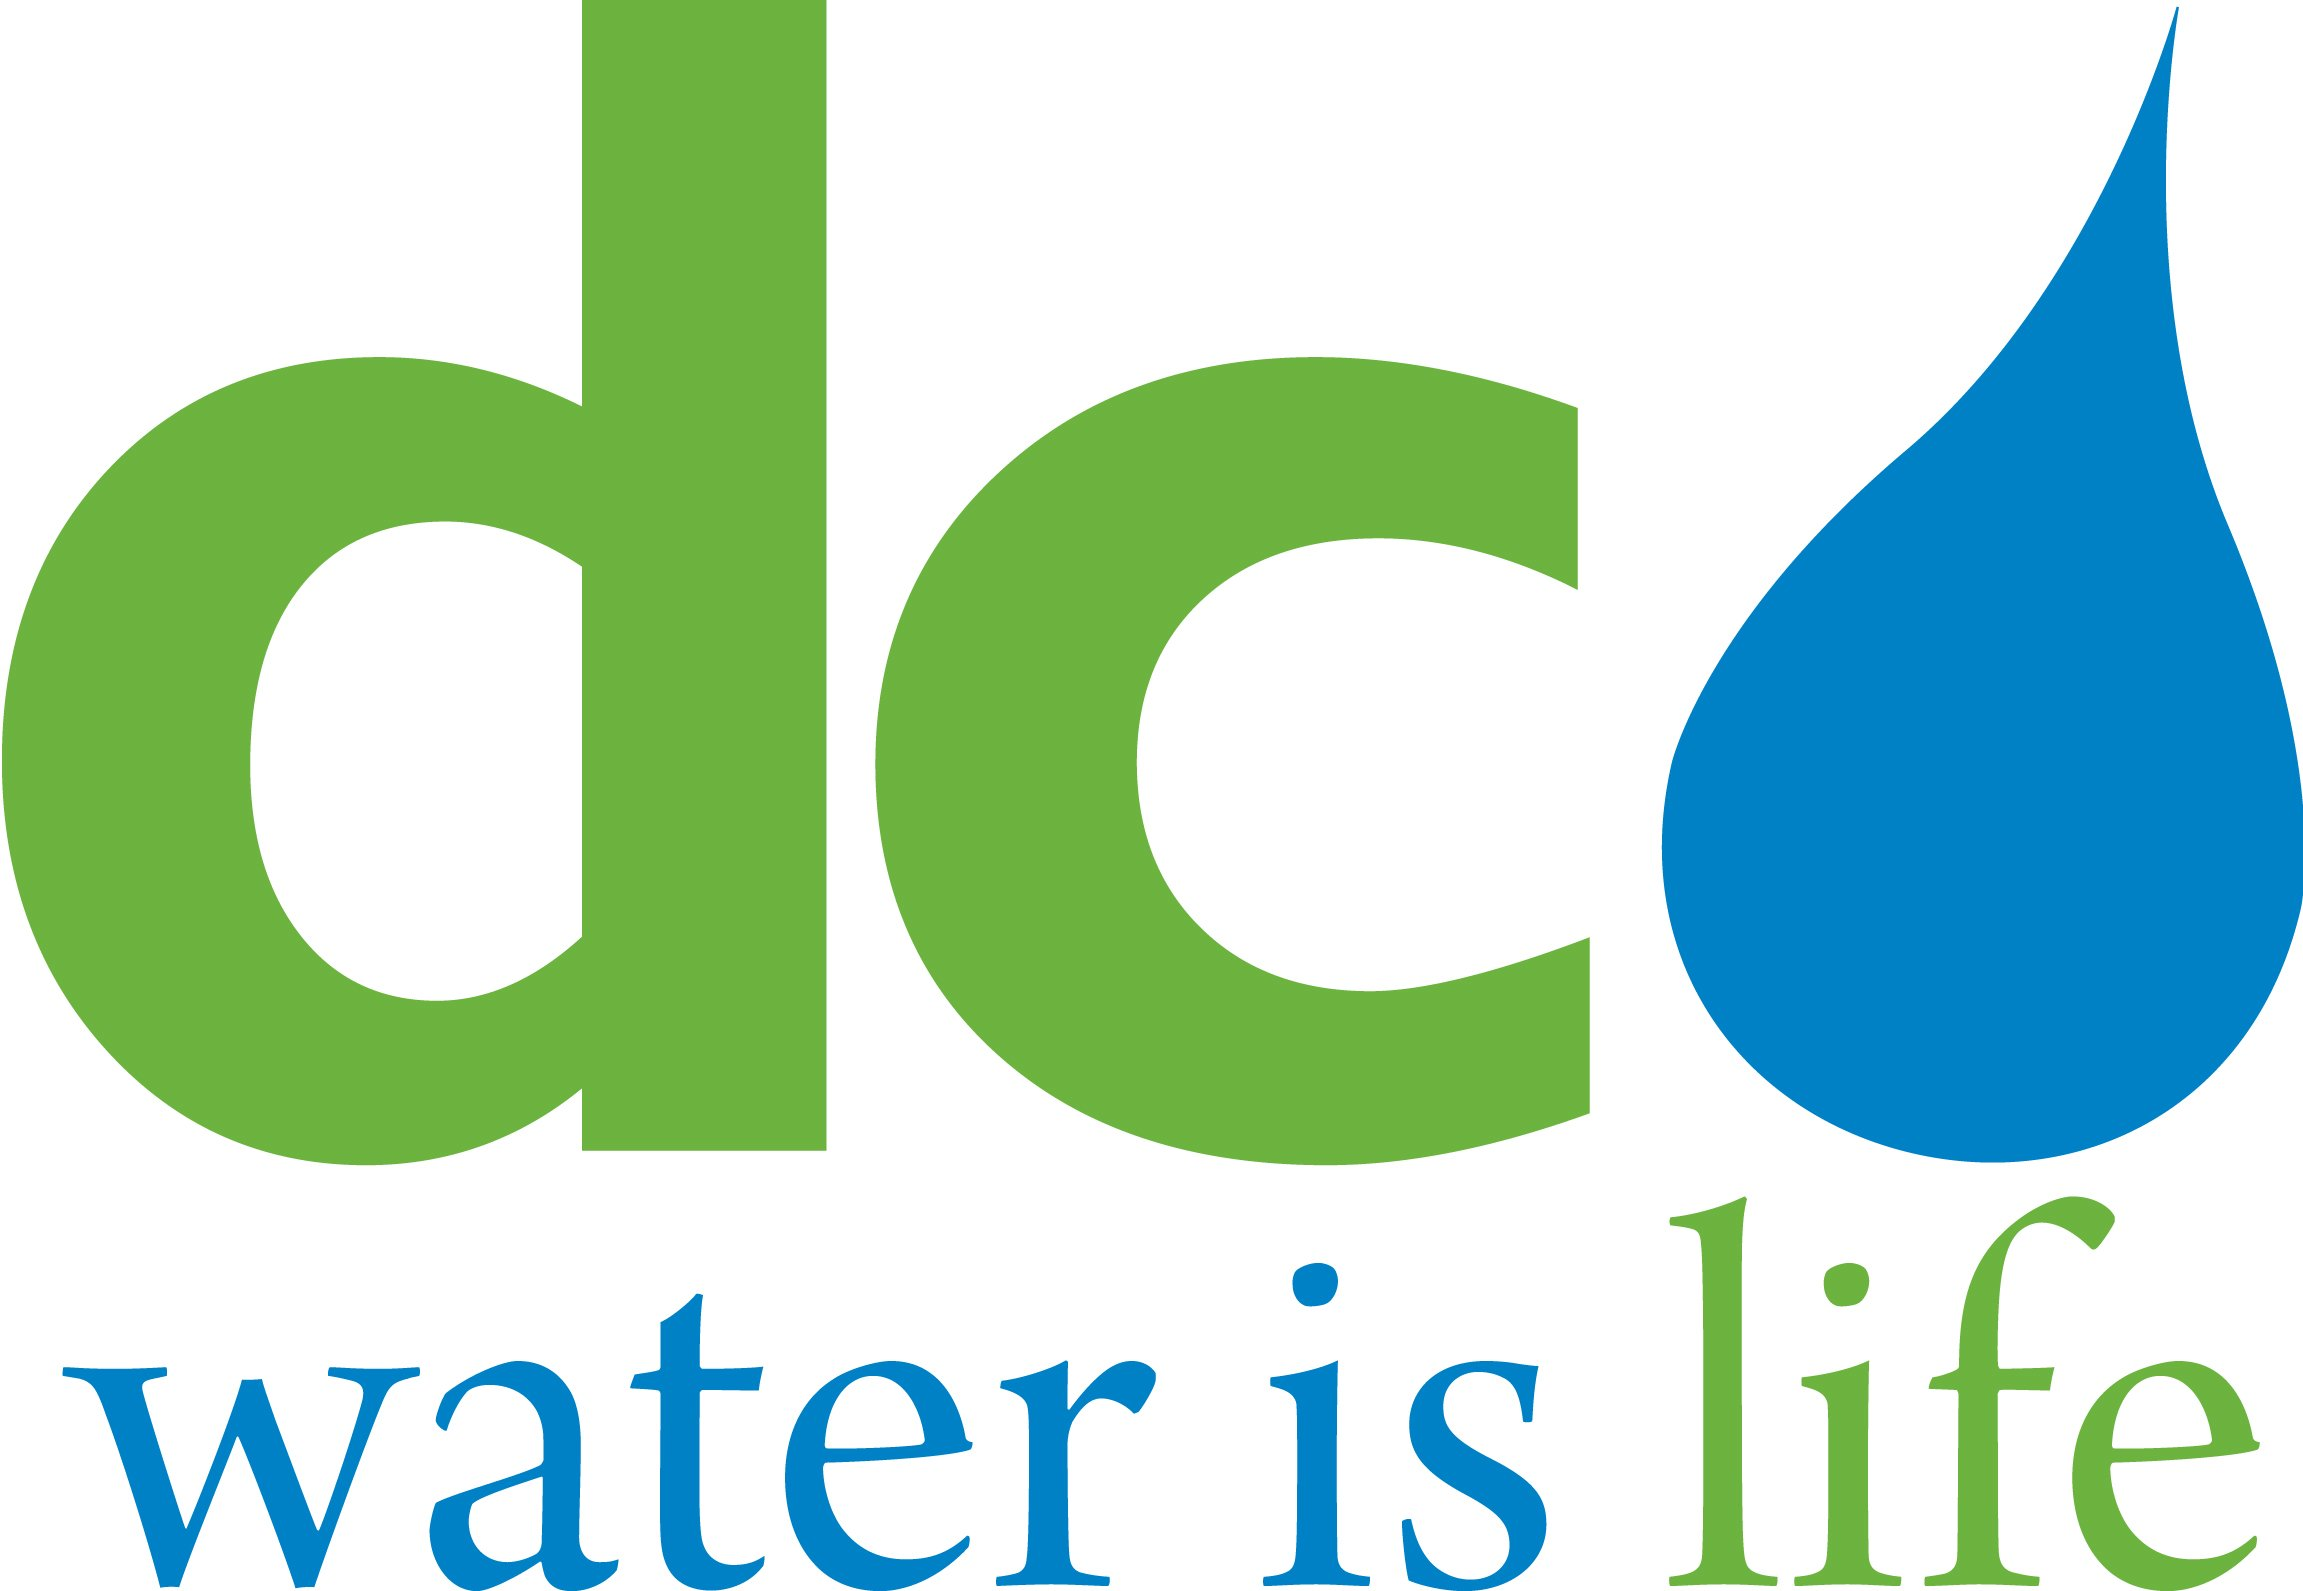 DCwater